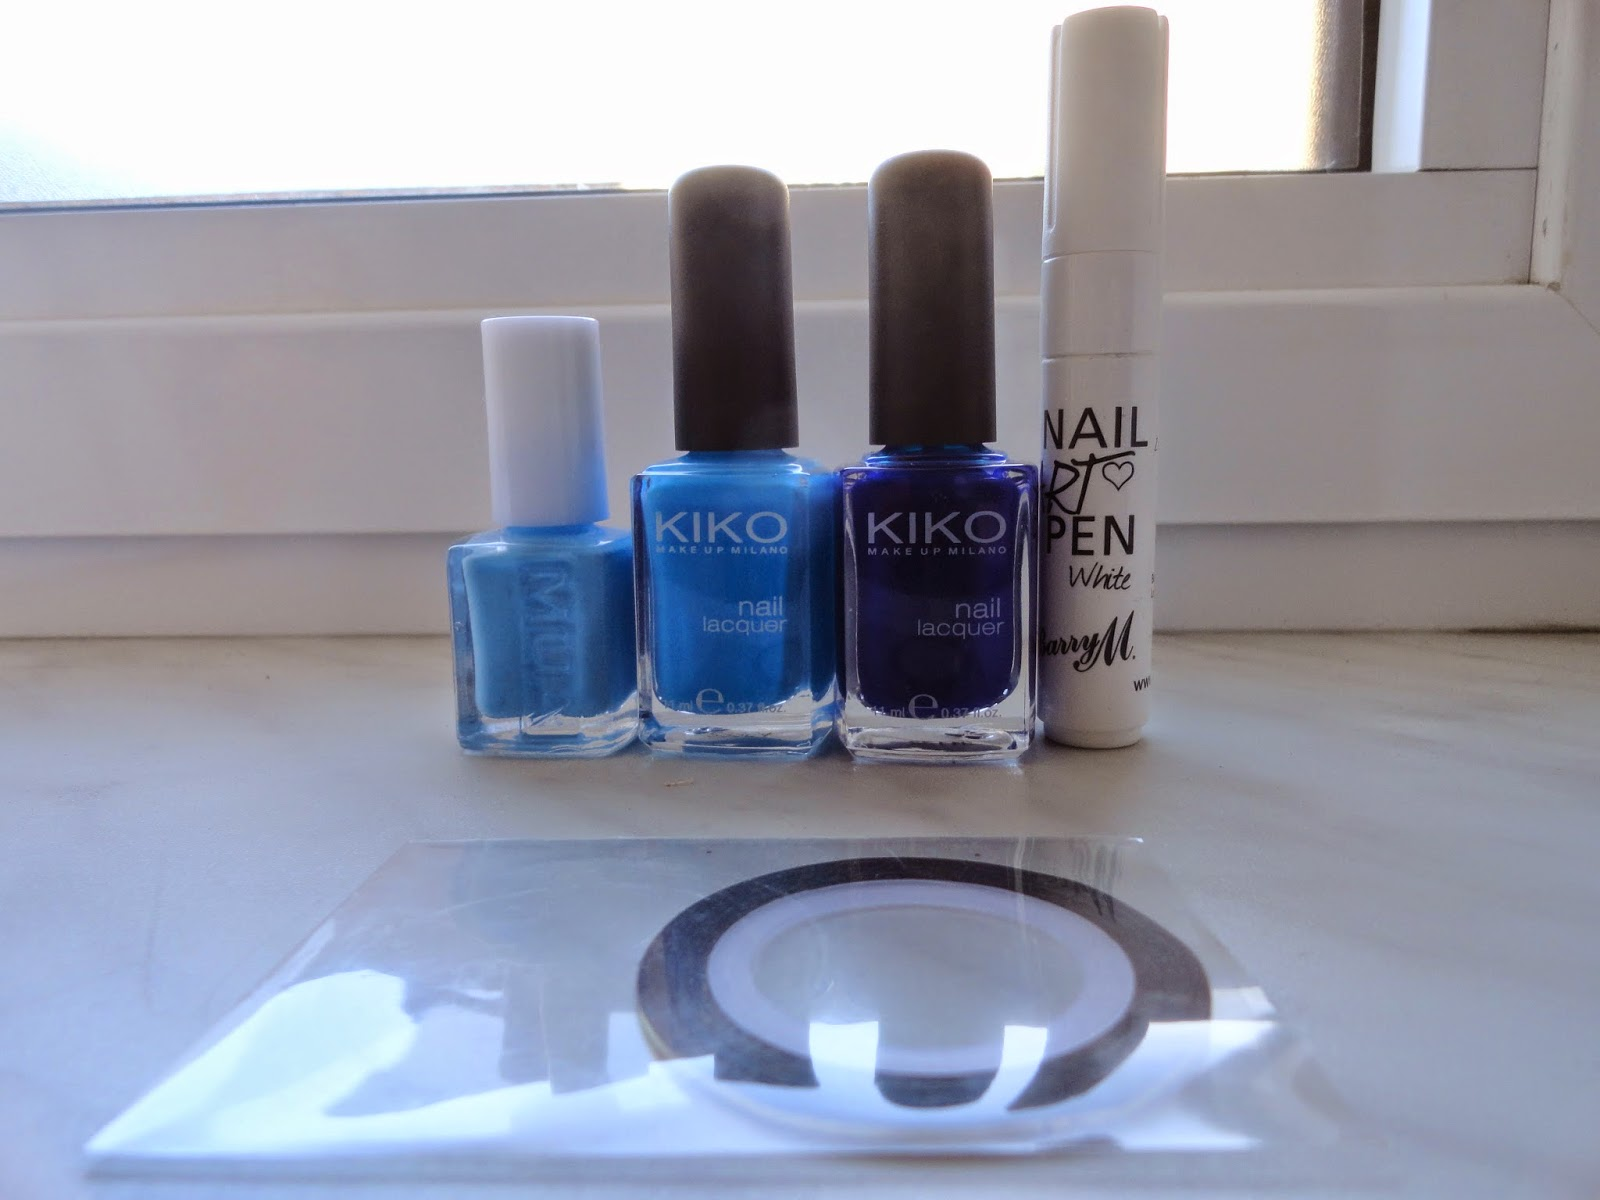 Clothes & Dreams: NOTD: Striped gradient: Essie Bold Blue, Kiko 295, Kiko 335, Barry M white nail art pen, striping tape